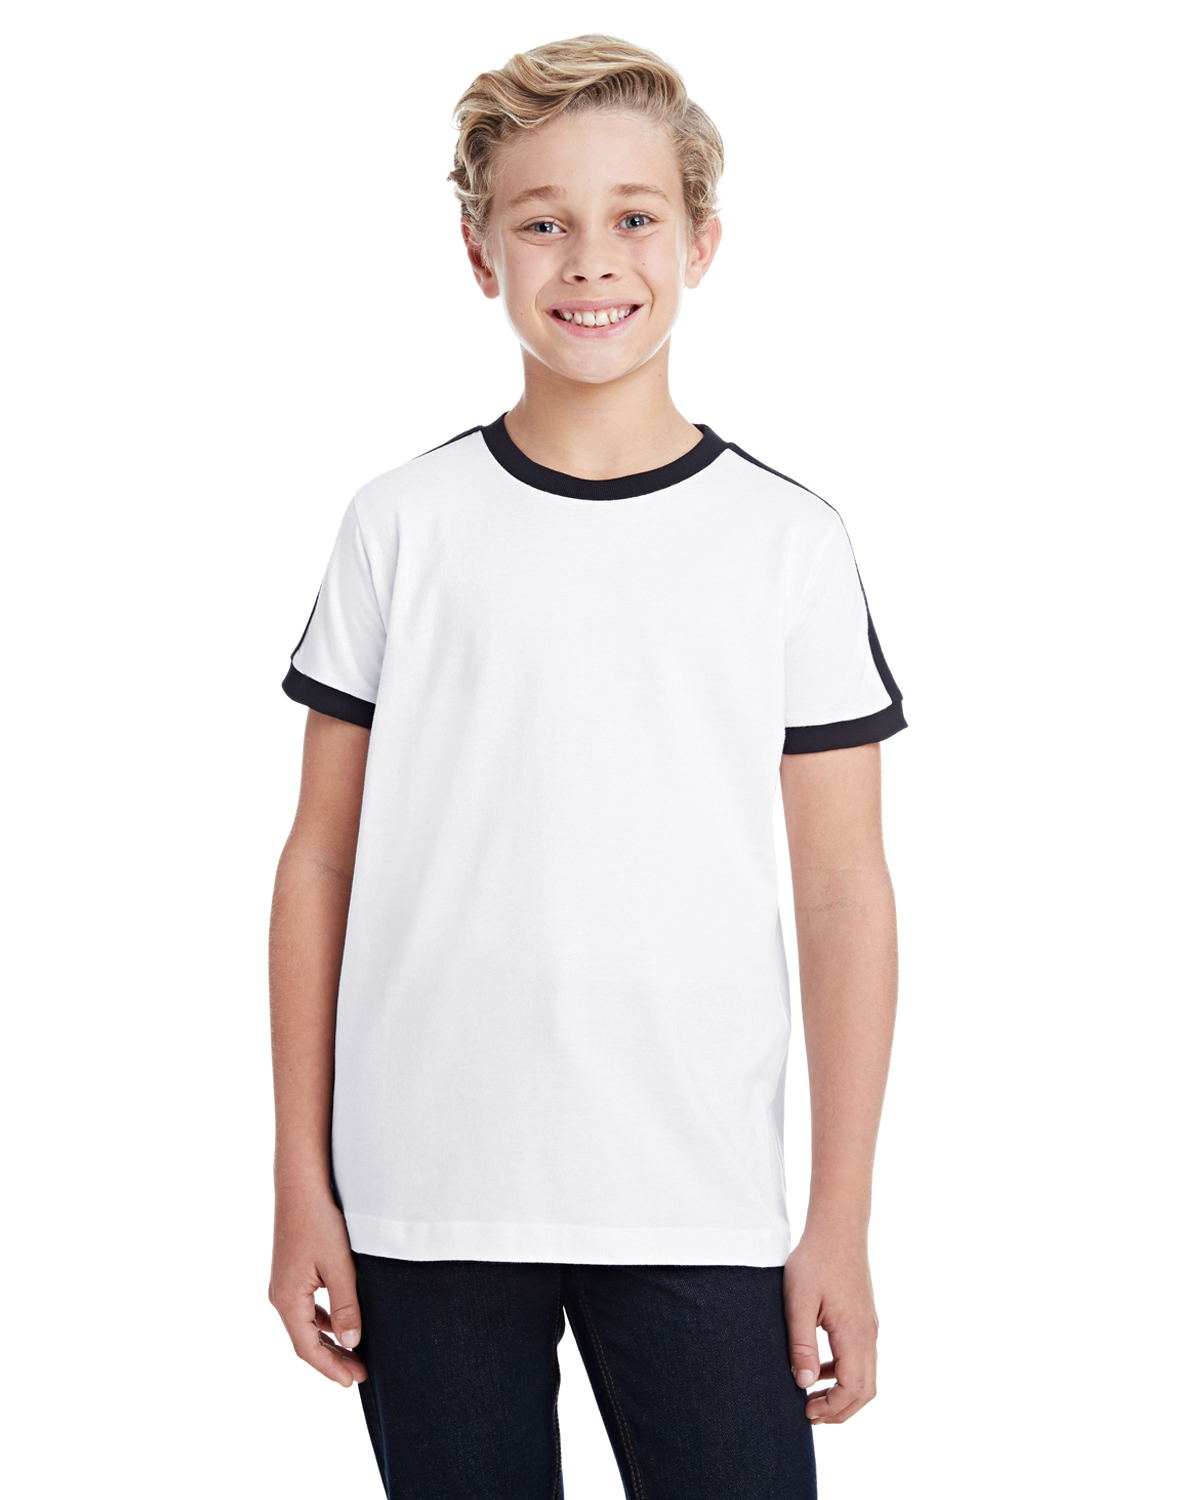 LAT 6132 - Youth Soccer Ringer Fine Jersey T-Shirt